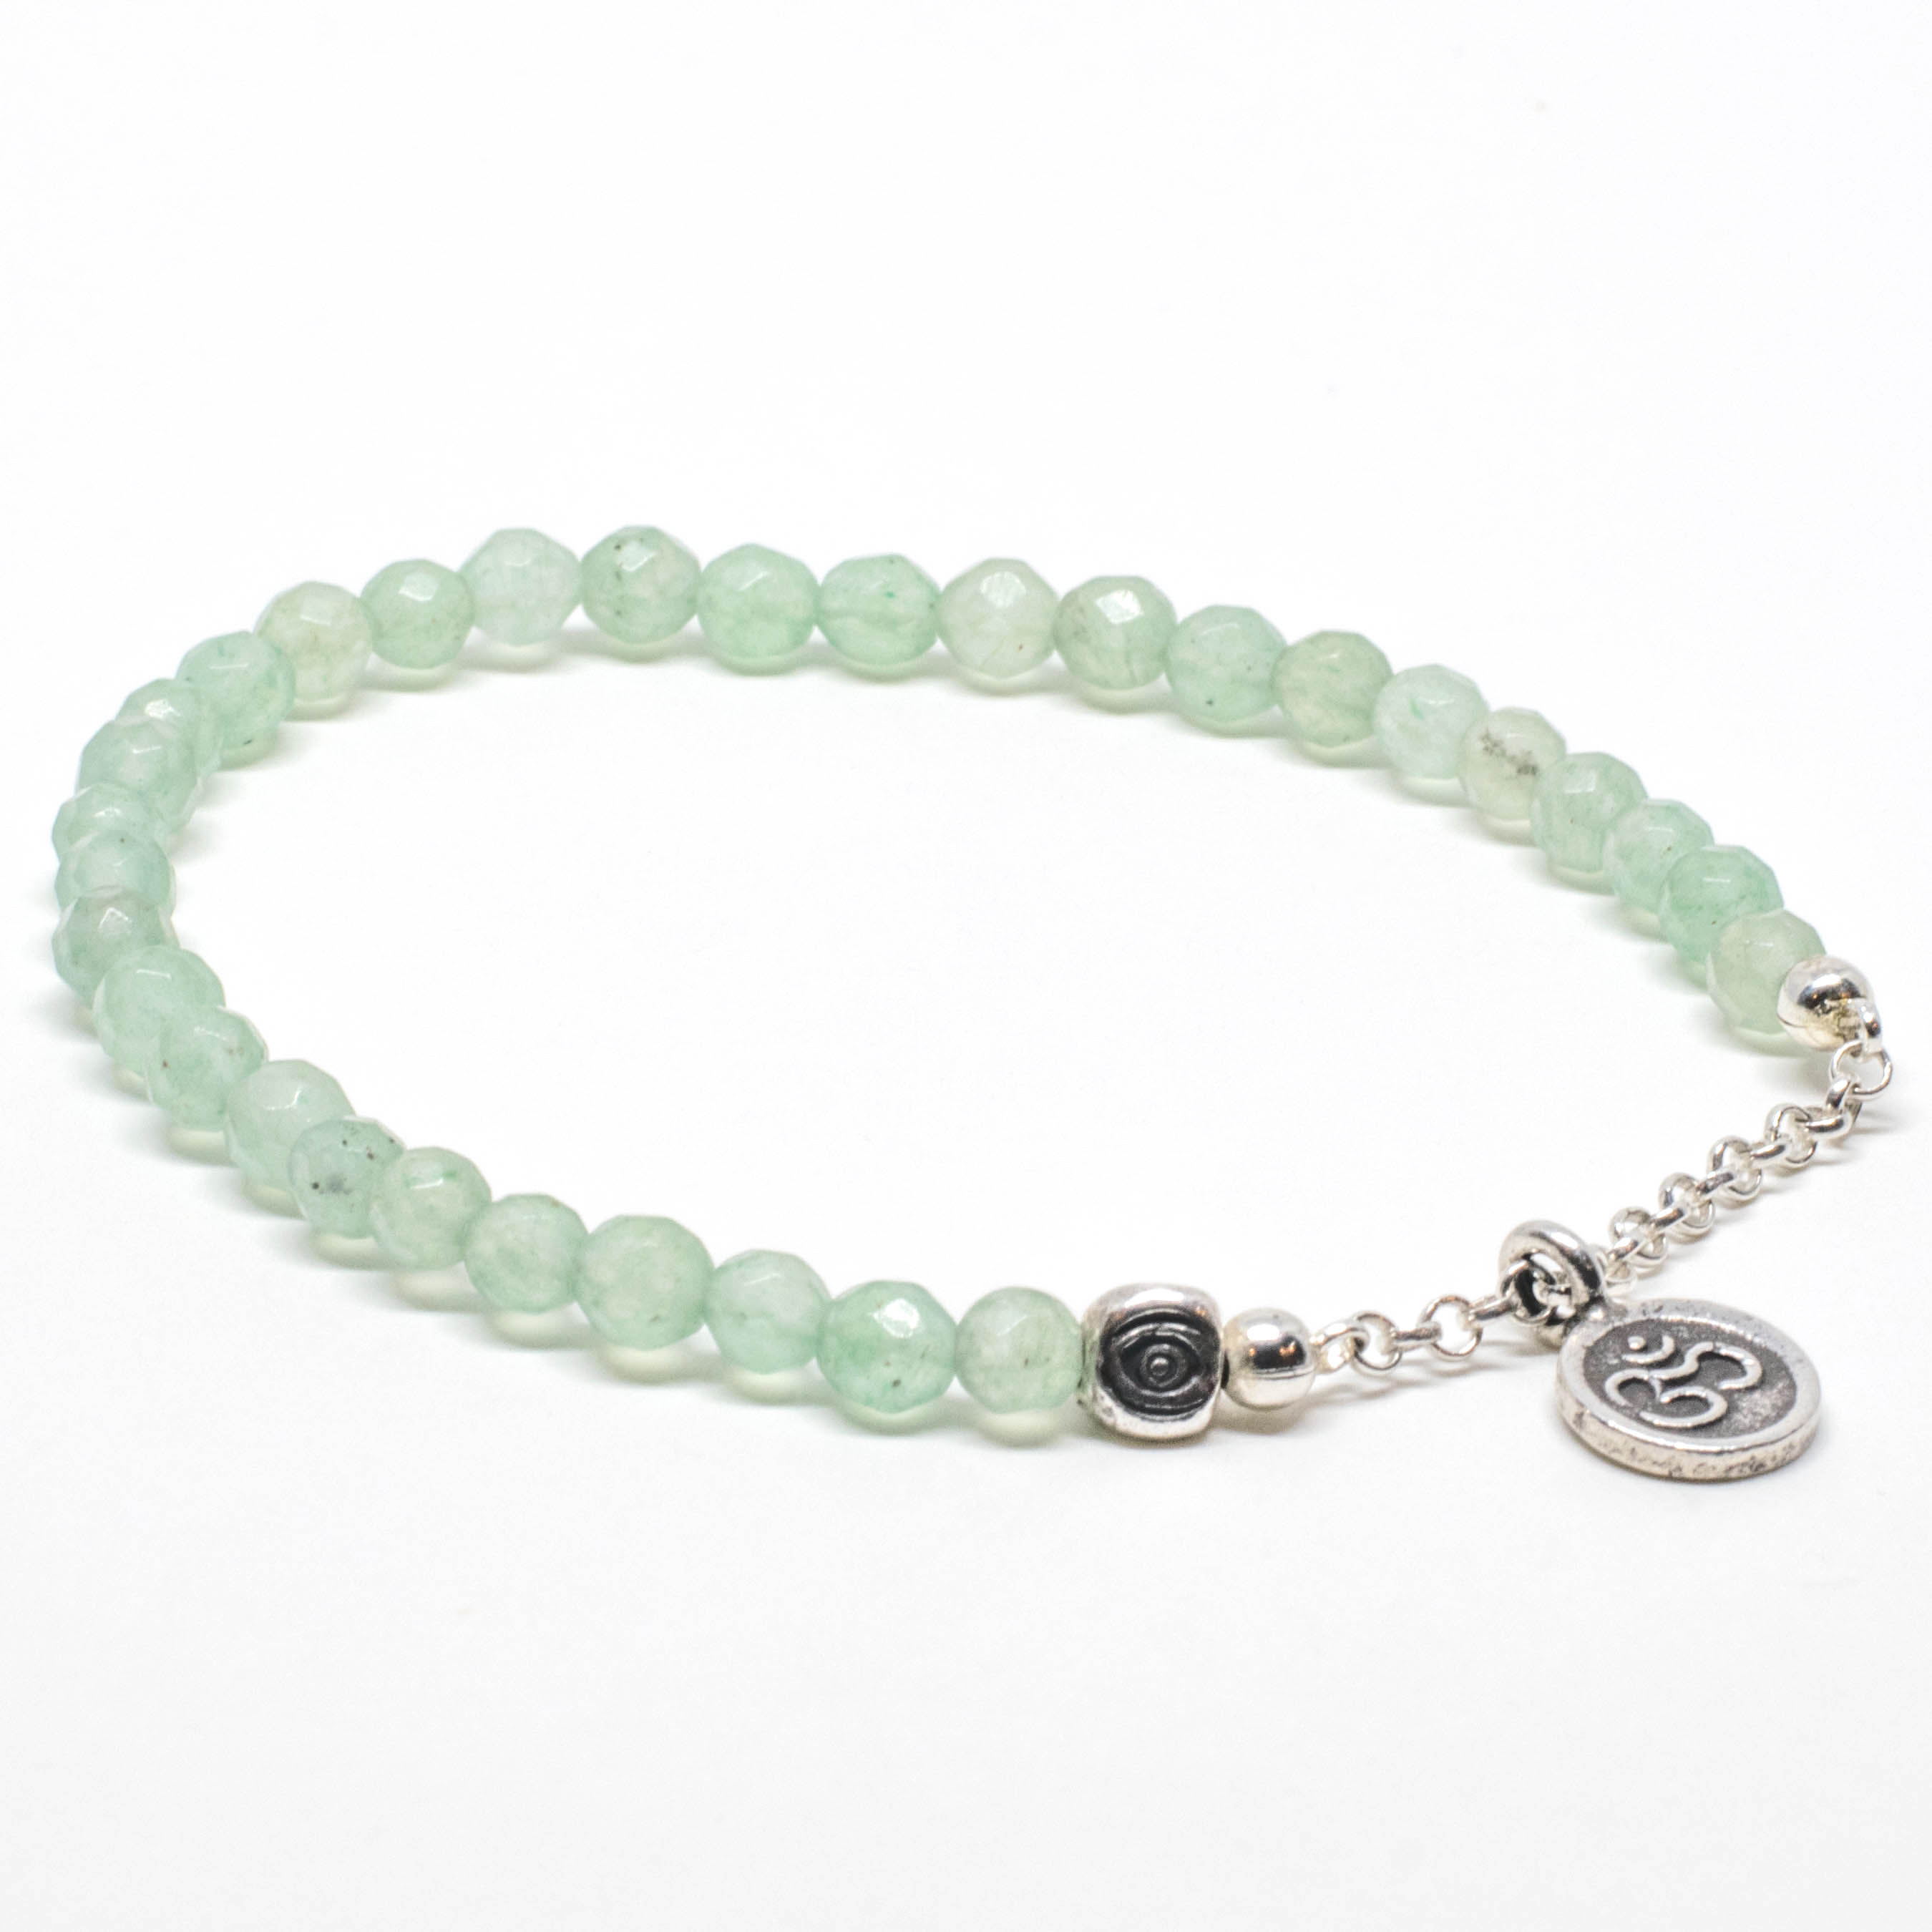 chain aventurine peace sign jewlery shakti product bracelet stretch sparkle